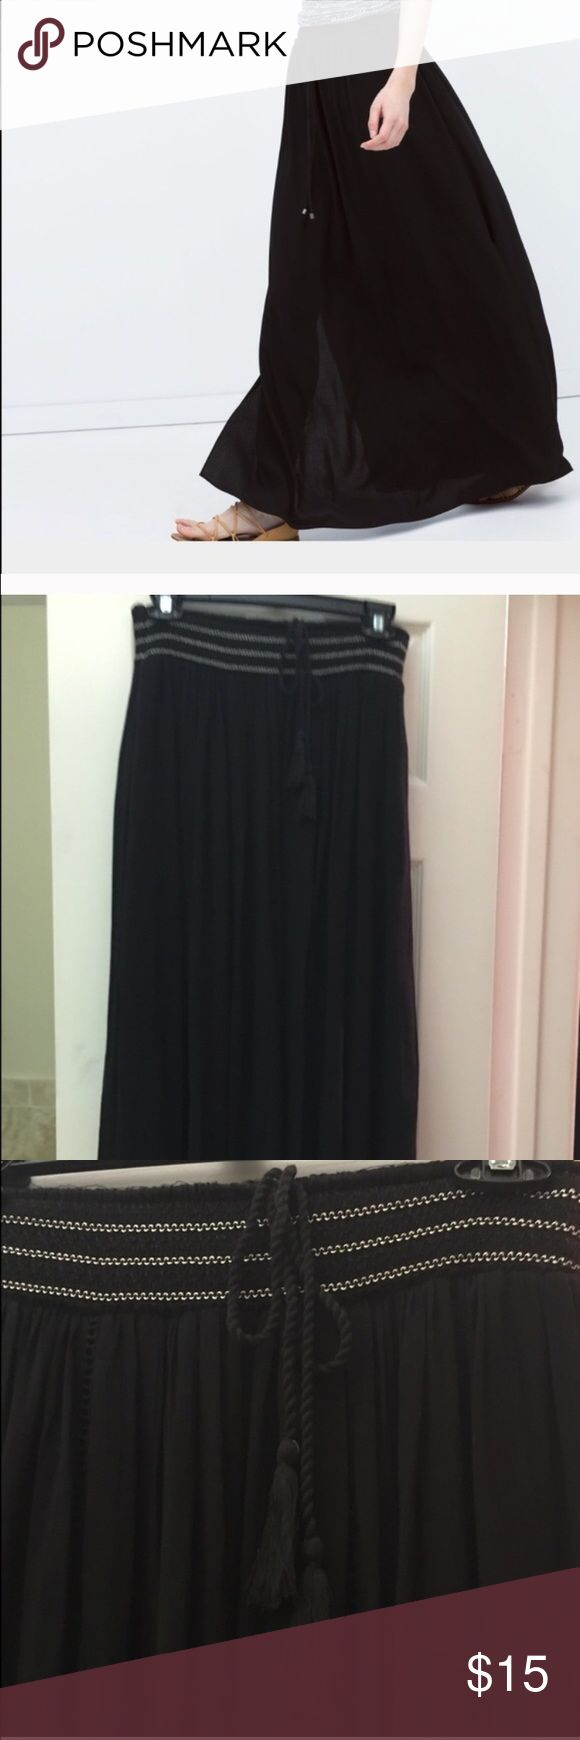 Zara black linen skirt Zara black ling linen skirt, size medium, new without tags  ONE DAY TO SALE. CLEANING OUT MY CLOSET I WILL DONATE EVERYTHING AFTER 1 DAY. Skirts A-Line or Full